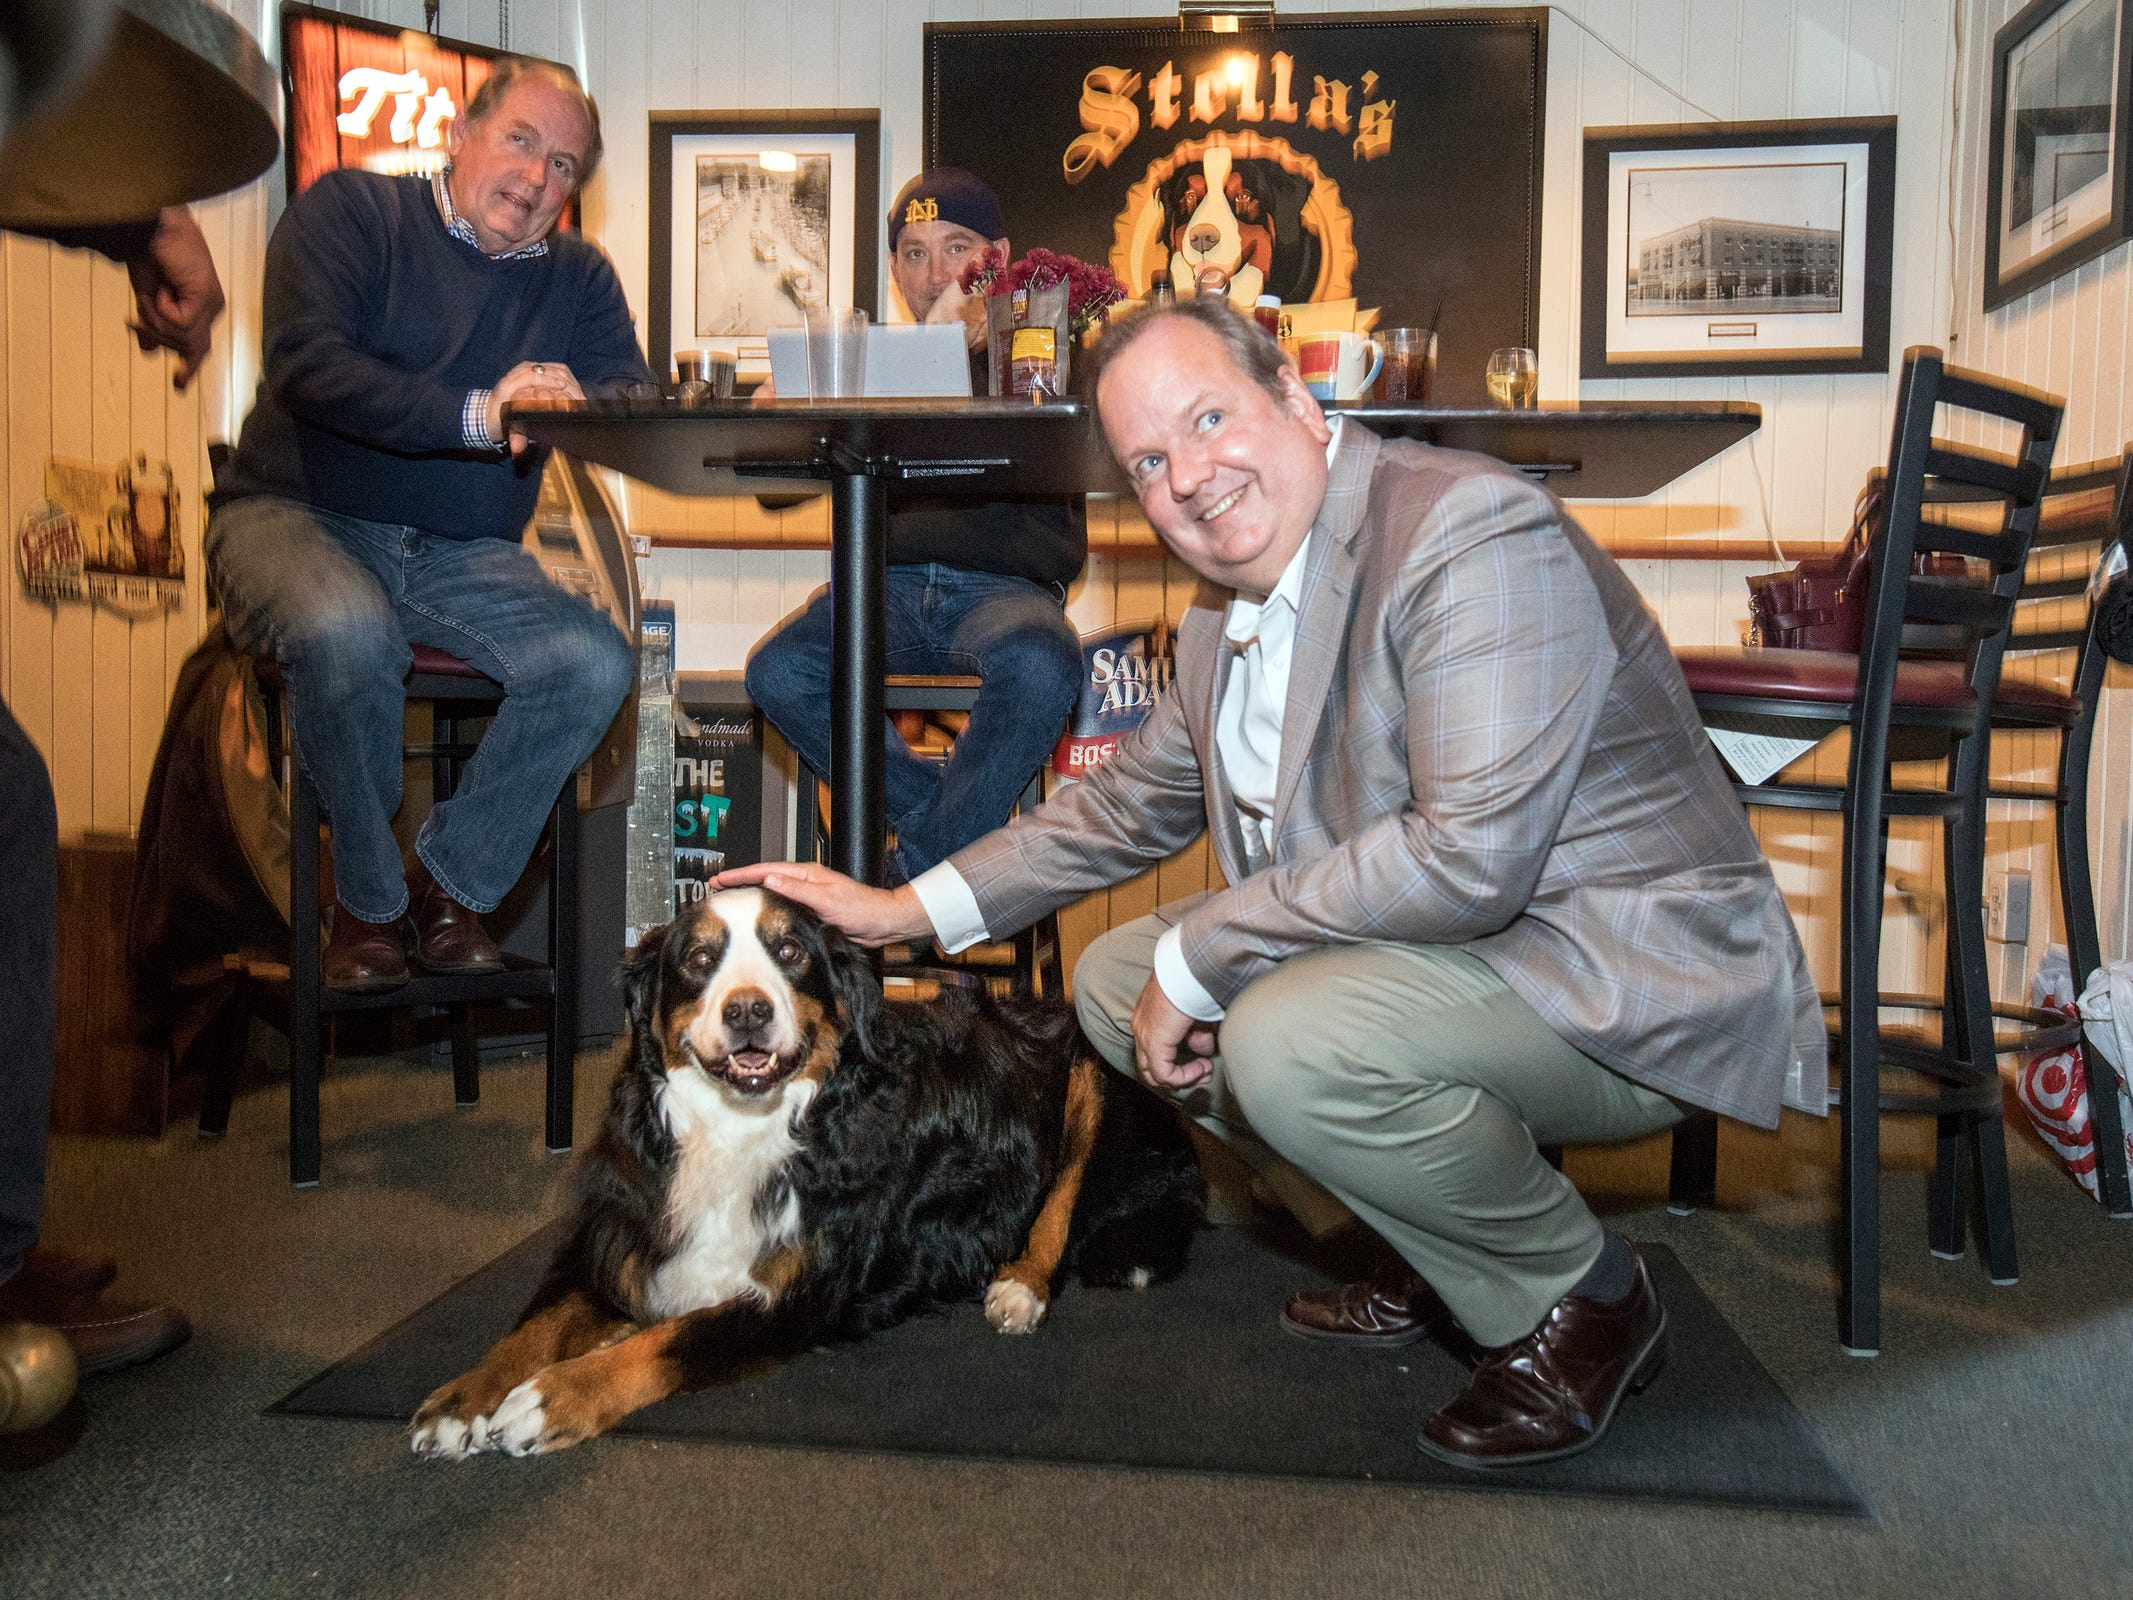 From left, Stella's Black Dog Tavern owners Bob Ostendorf, and Jim Sullivan are joined by Plymouth Township Supervisor Kurt Heise for the birthday party for Ostendorf's dog Stella at the tavern in Plymouth on Monday, Oct. 22, 2018.